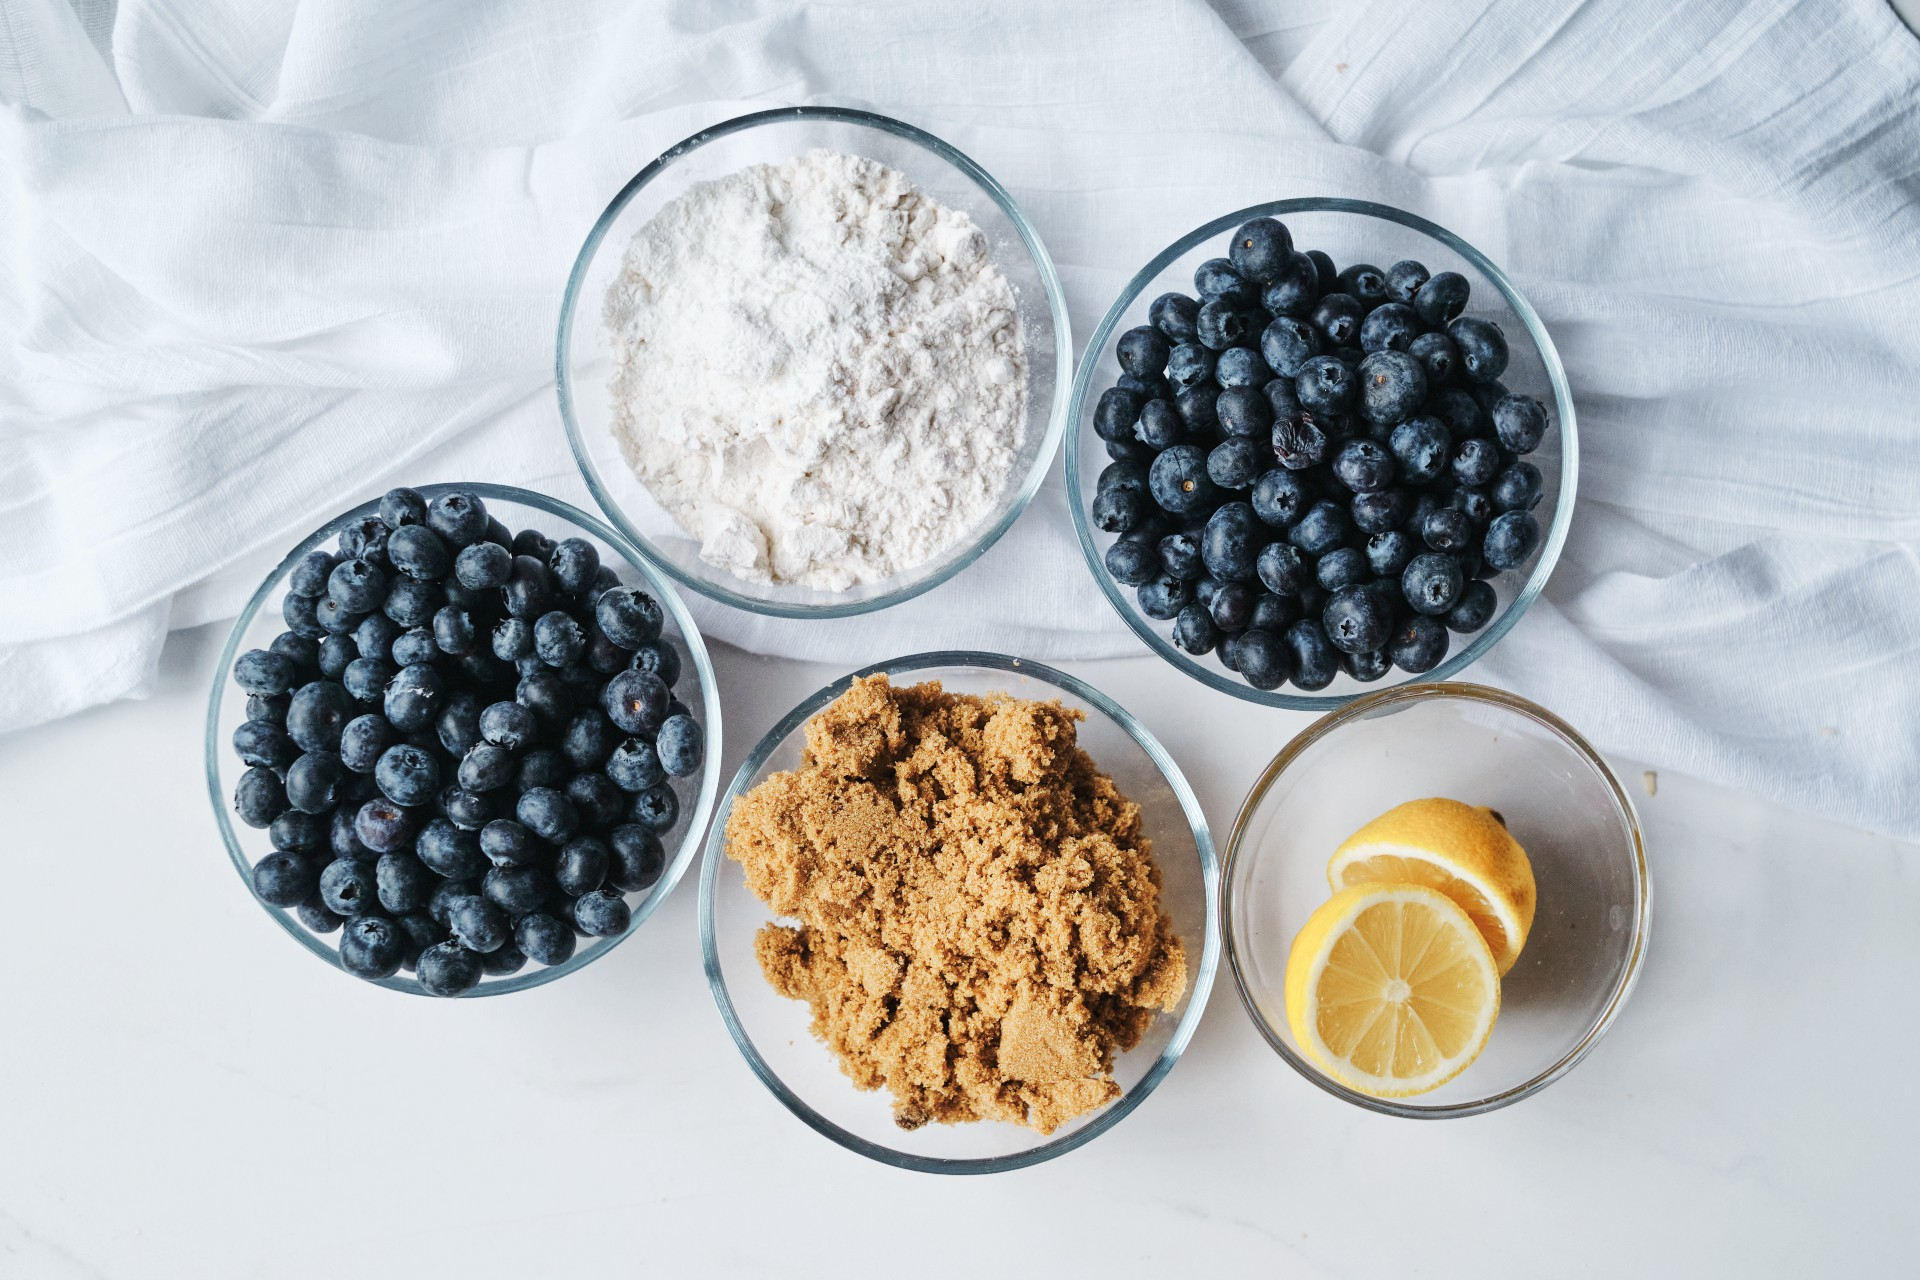 A flat lay of all the ingredients needed for the blueberry crumble pie recipe.